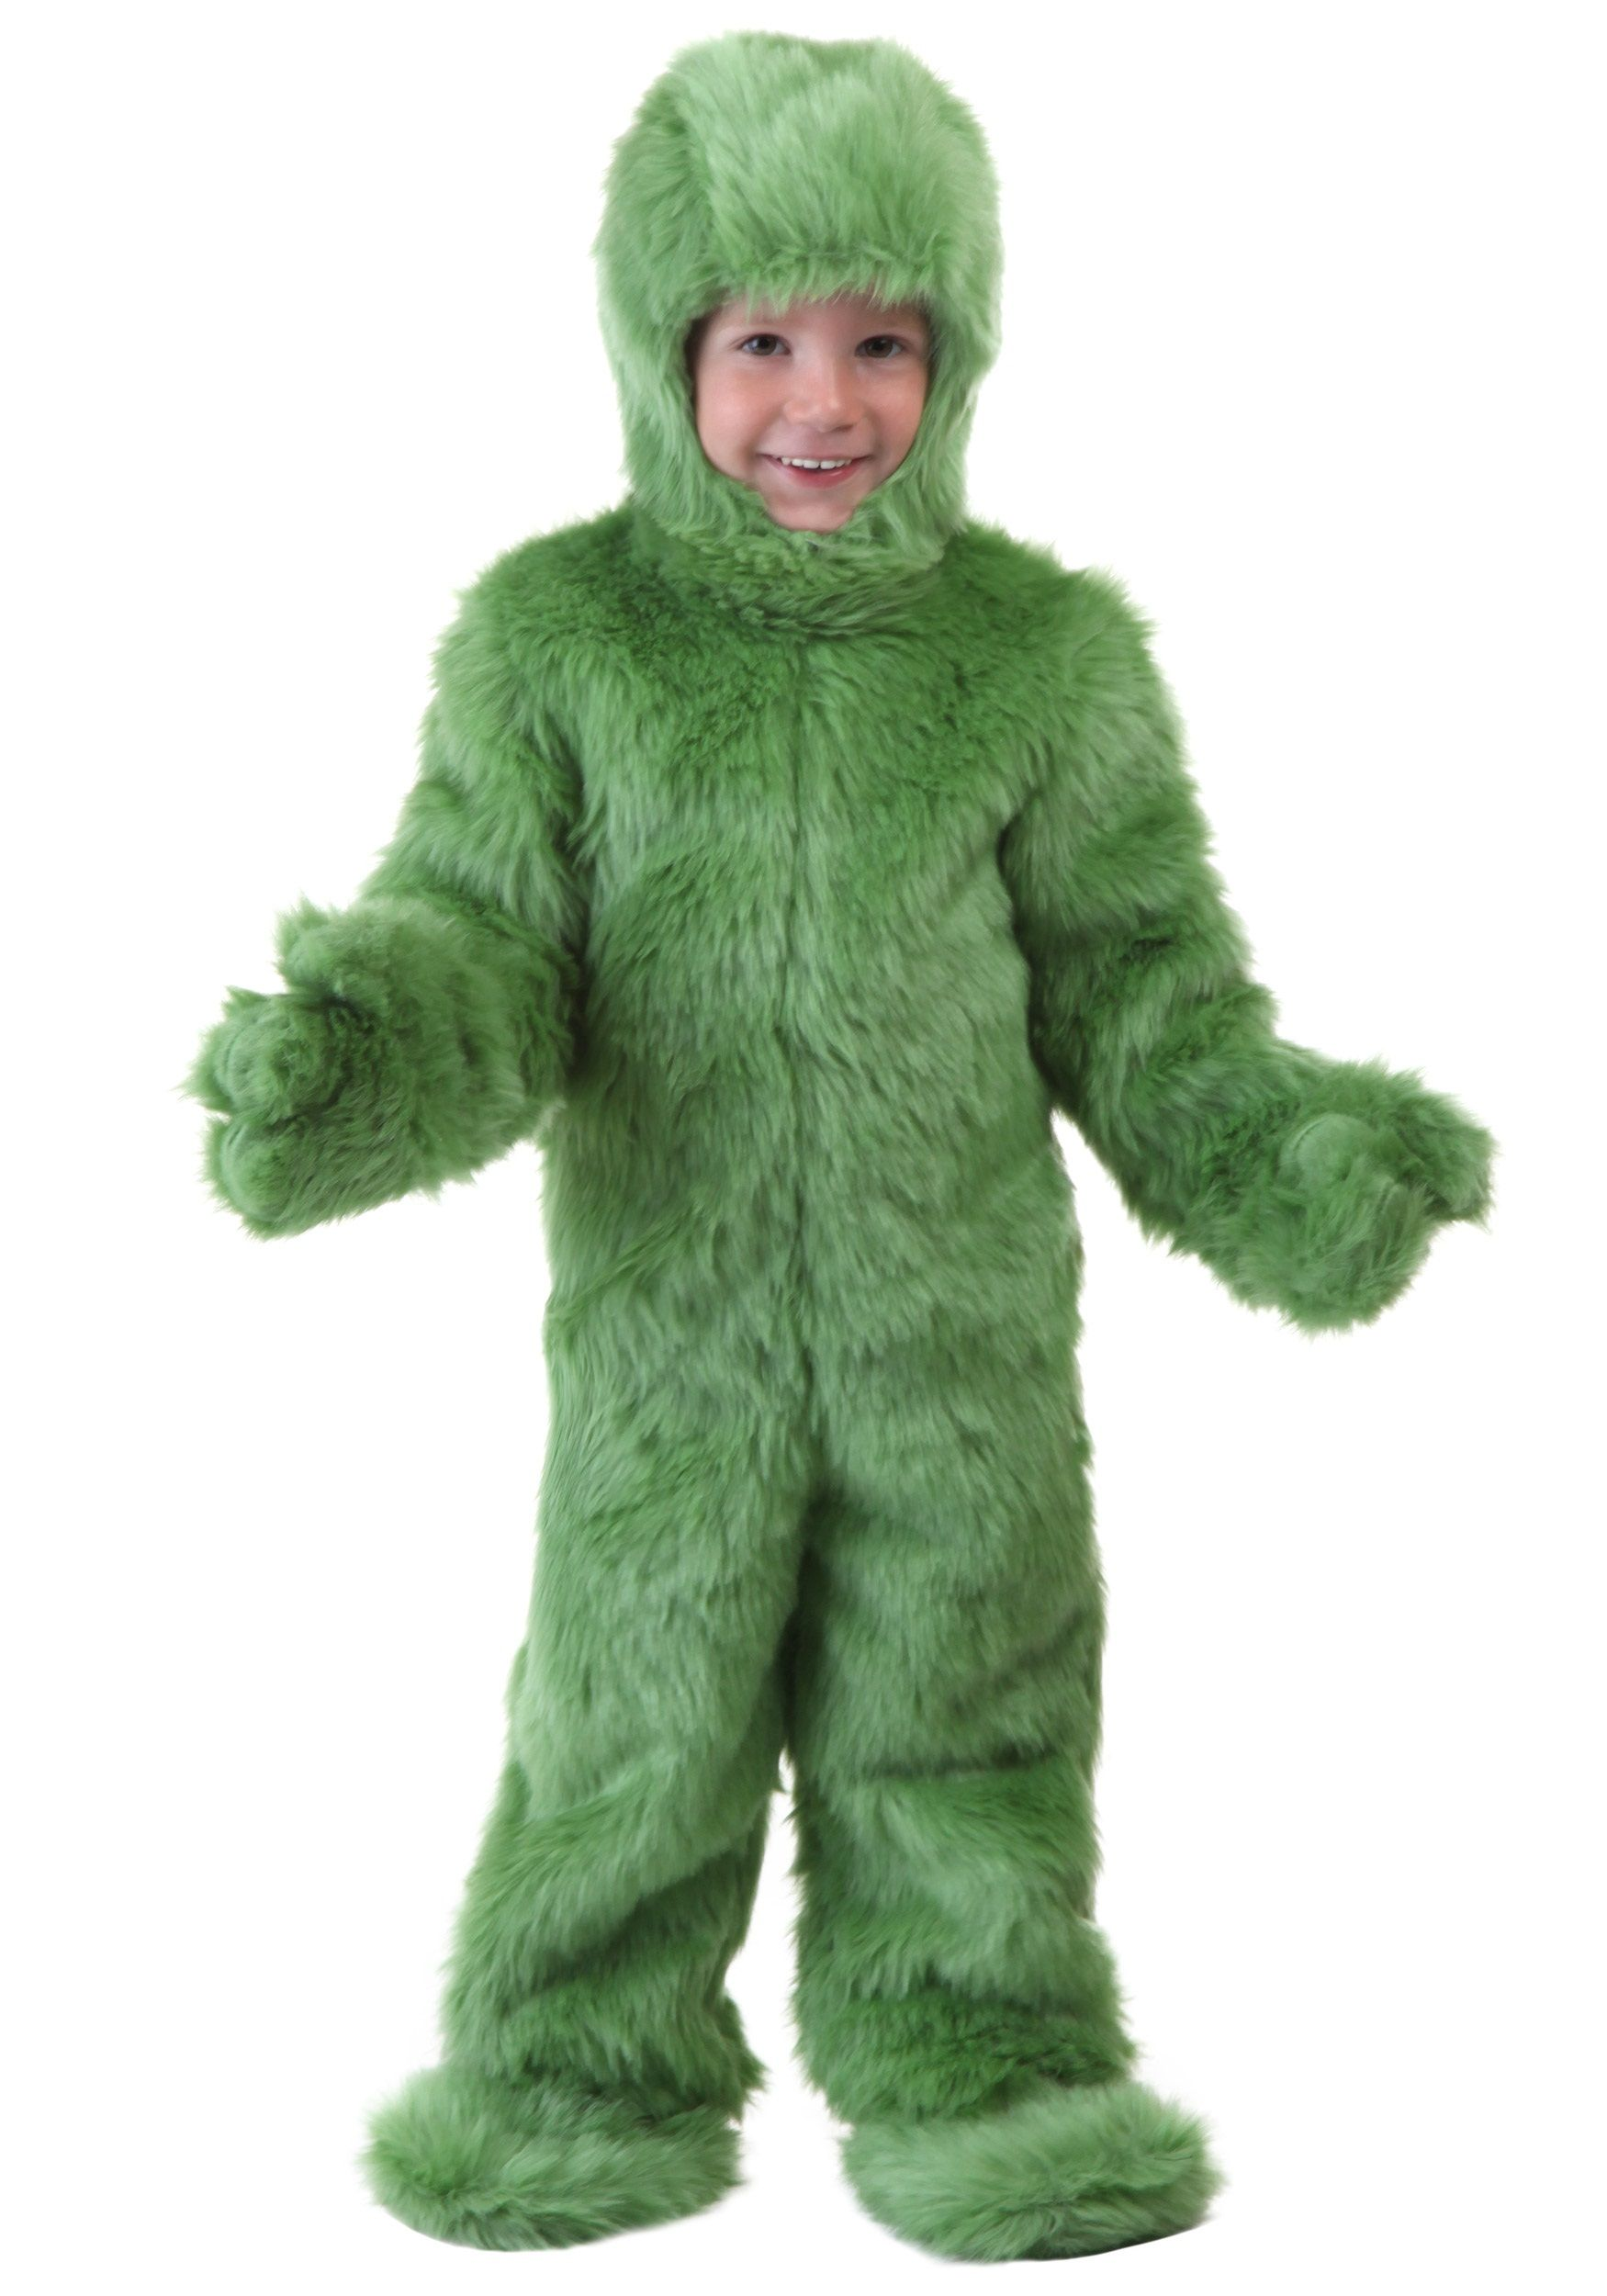 Toddler Green Furry Jumpsuit | Baby Halloween Costumes | Pinterest ...